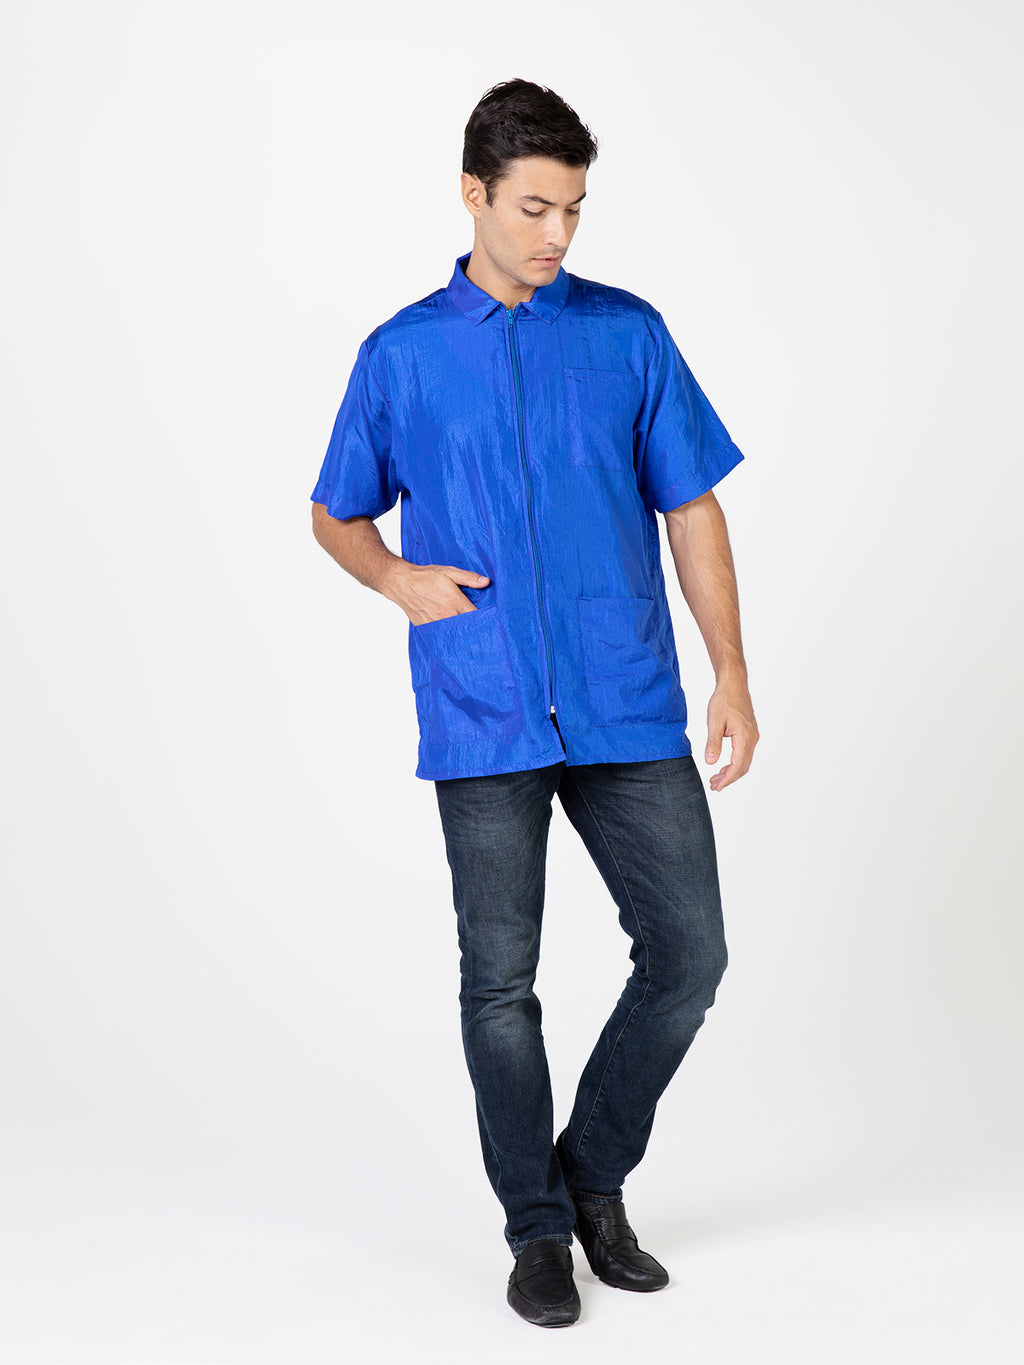 Betty Dain Creations Nylon Barber Jacket in Royal Blue